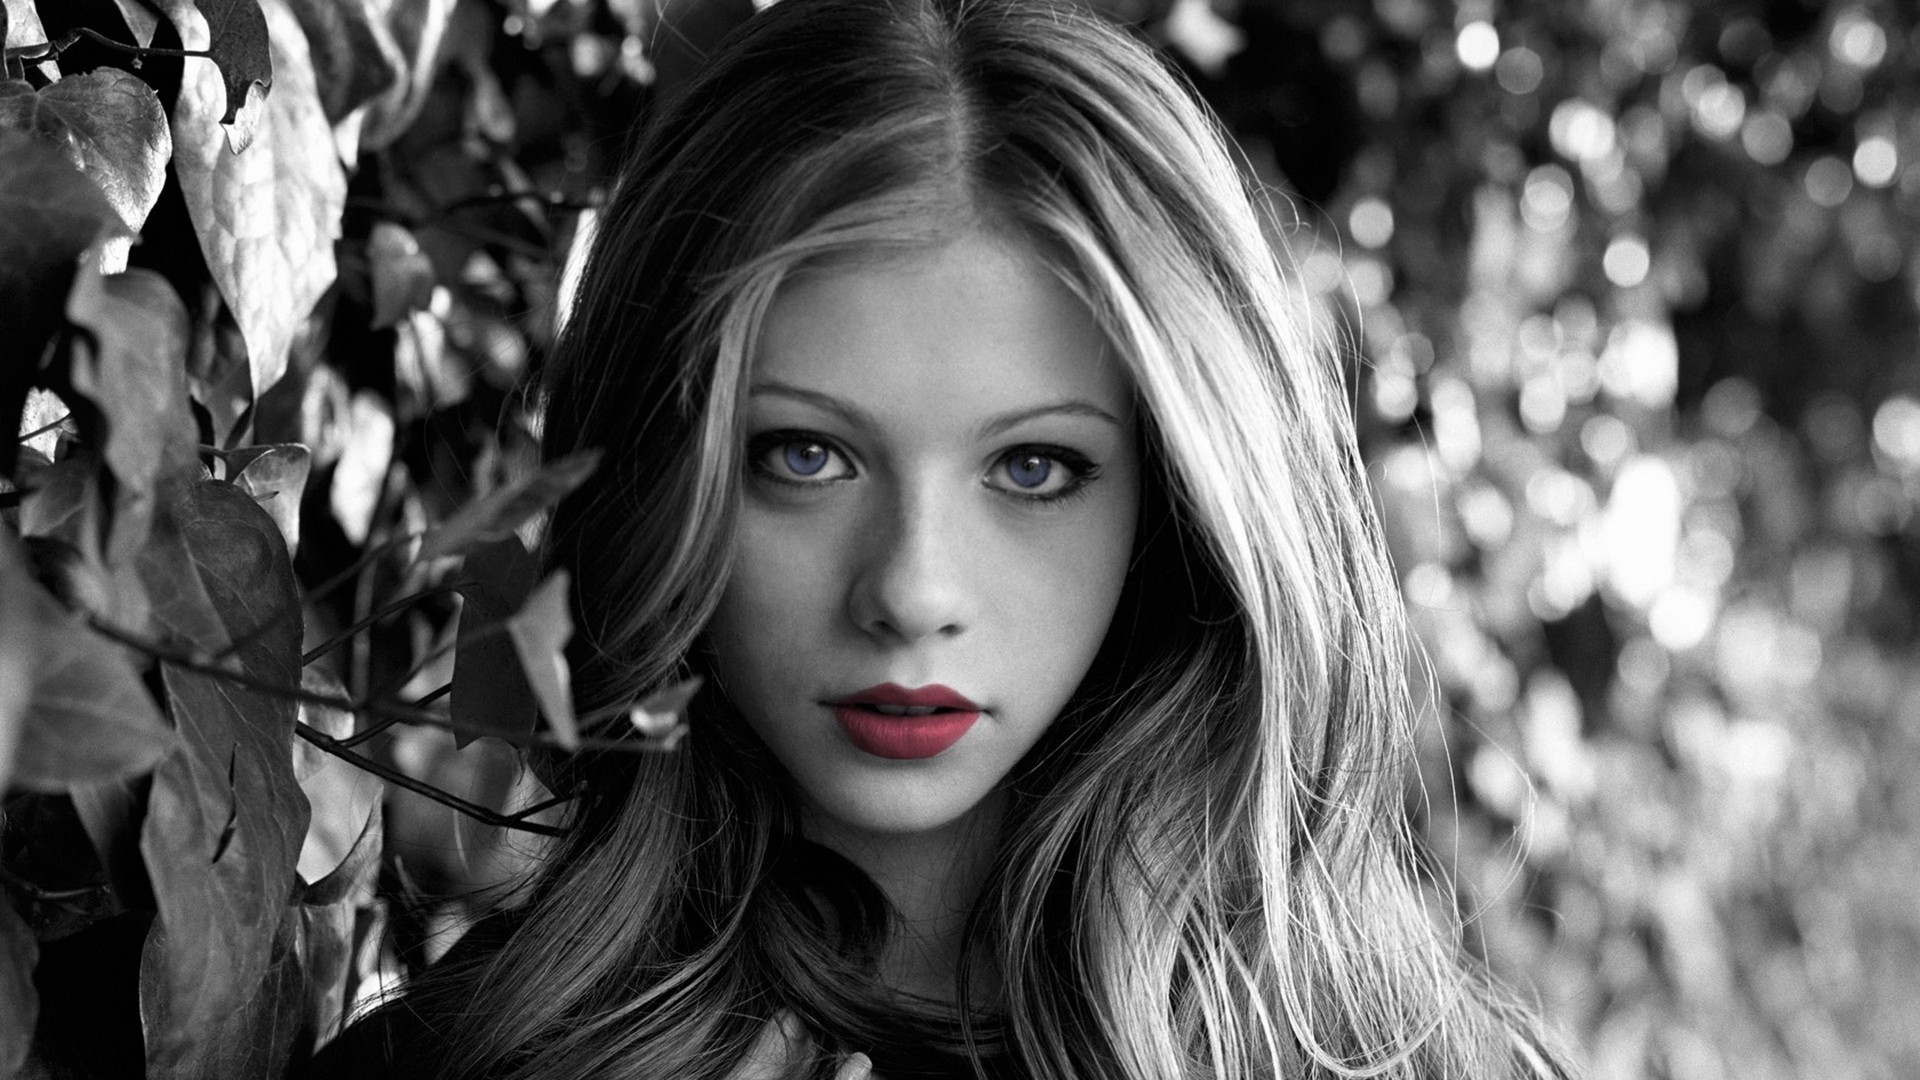 Girl Red Lips Wallpaper Michelle Trachtenberg Wallpapers Hd Desktop And Mobile